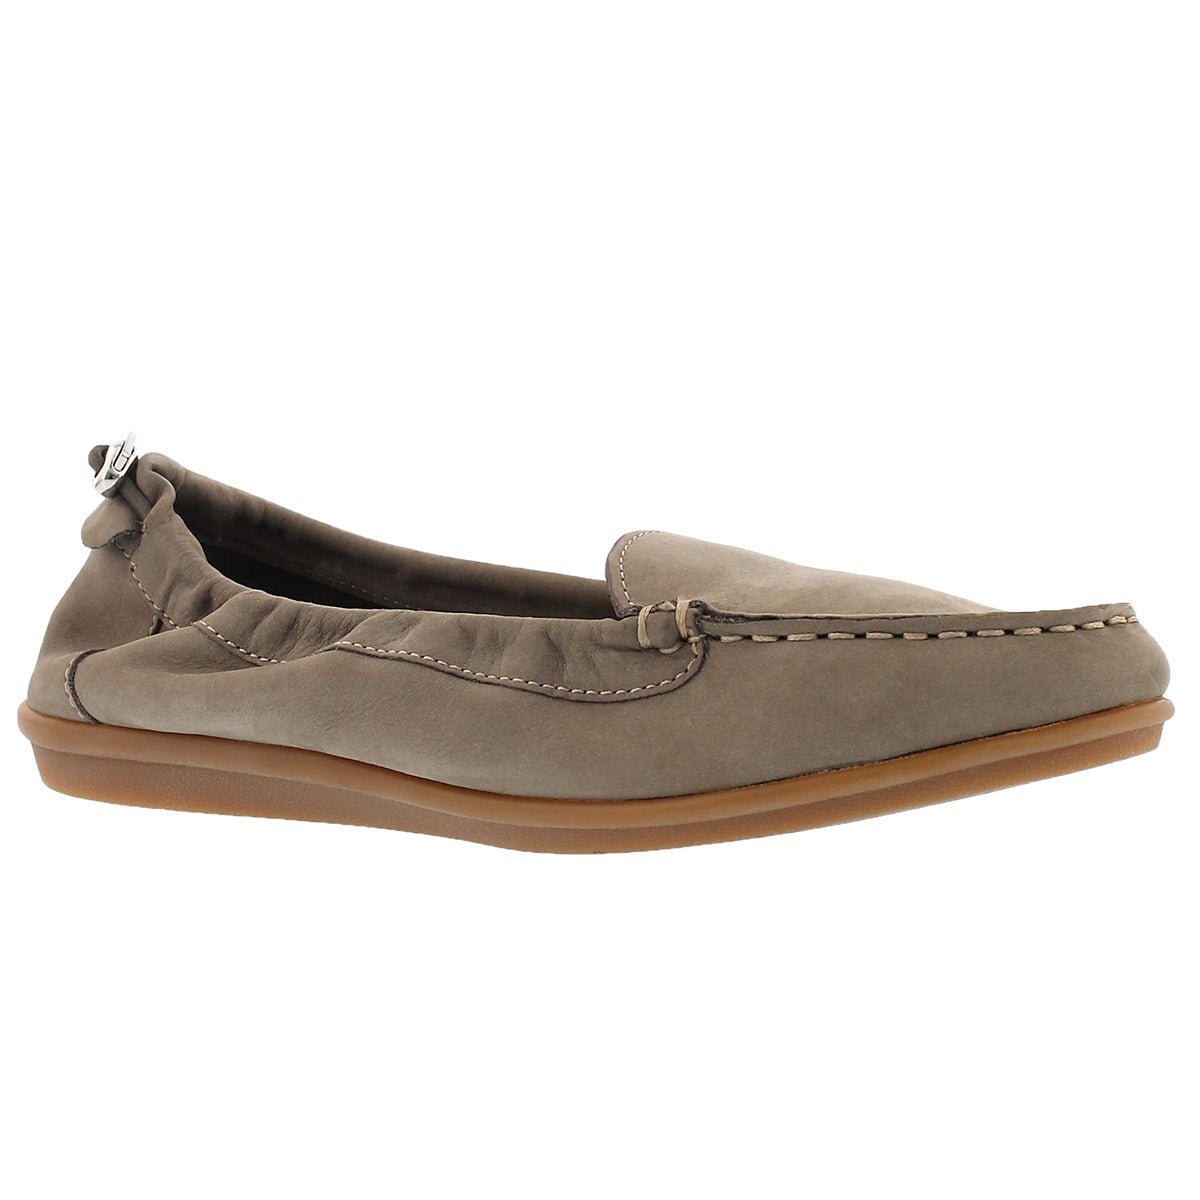 Women's ENDLESS WINK taupe casual slip ons